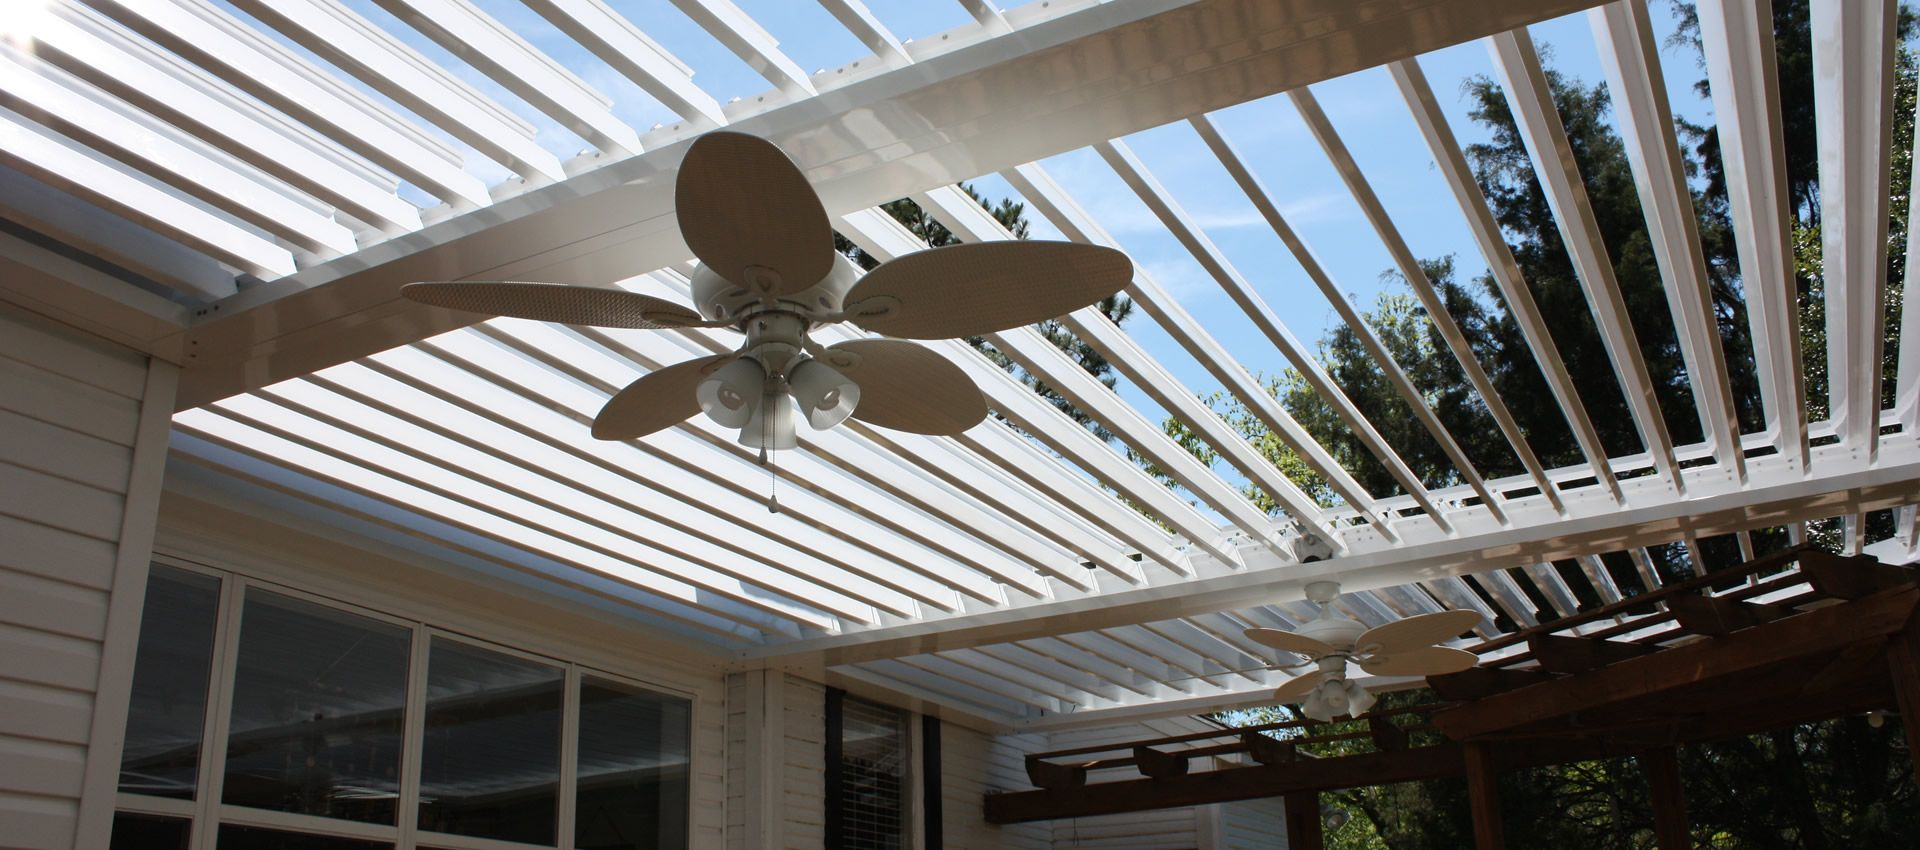 louvered pergola adjustable slats that are moveable using solar